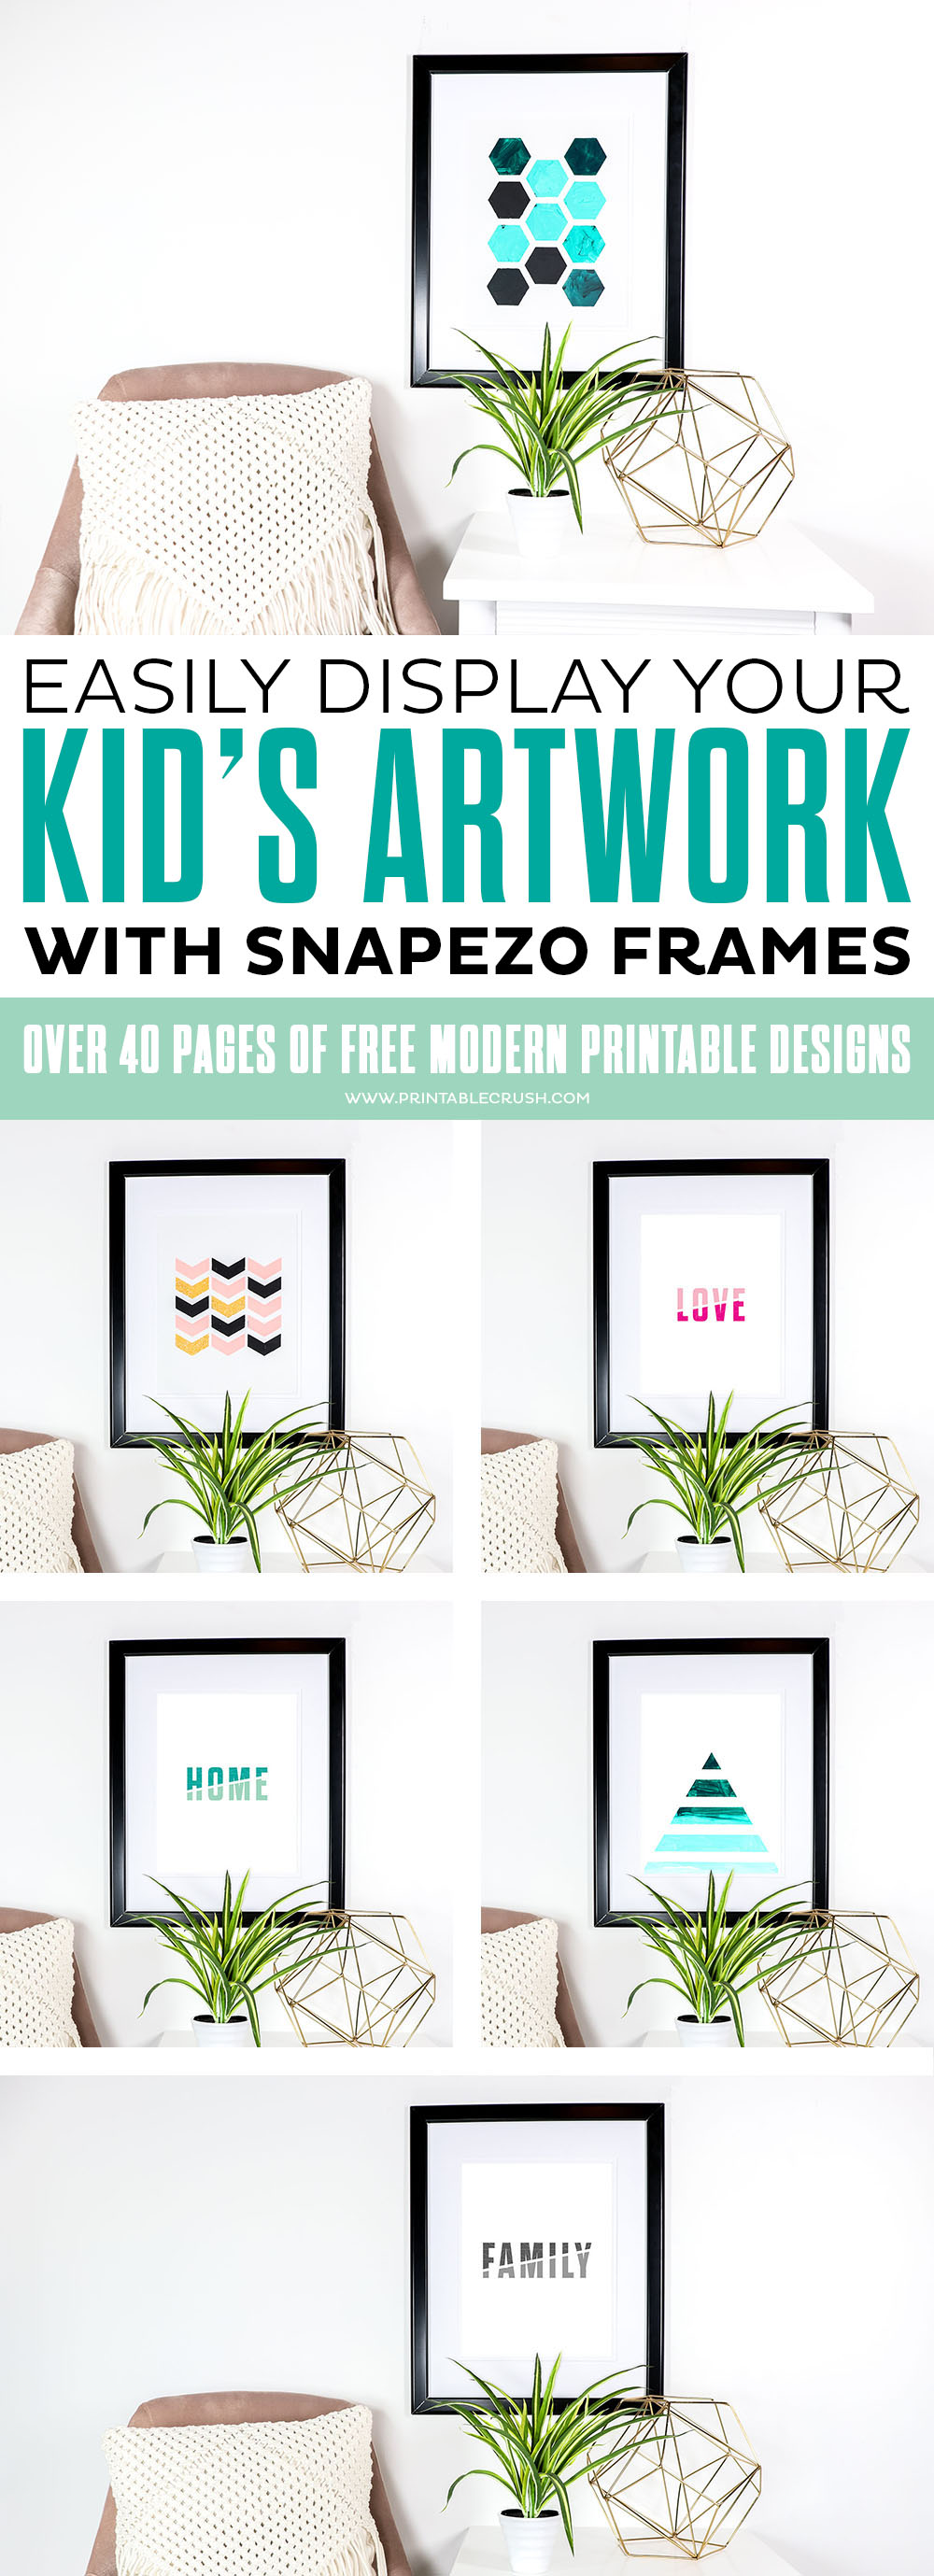 12 FREE Modern Printable Designs in this post about how to easily display your kid's artwork with Snapezo Frames!